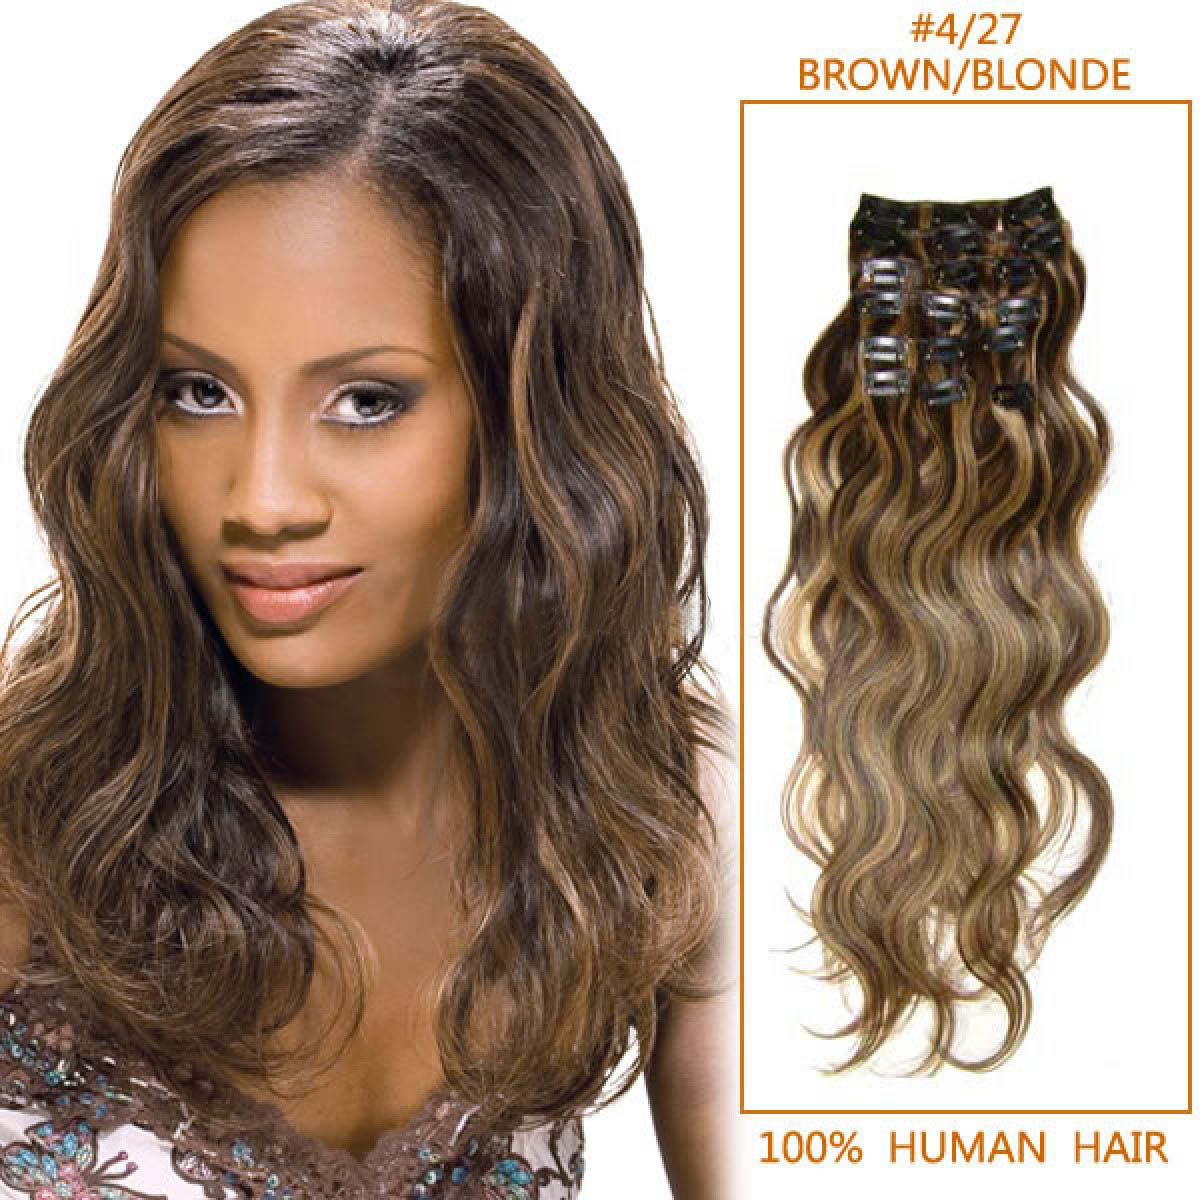 Inch 427 brownblonde wavy clip in remy human hair extensions 7pcs 20 inch 427 brownblonde wavy clip in remy human hair extensions 7pcs pmusecretfo Image collections